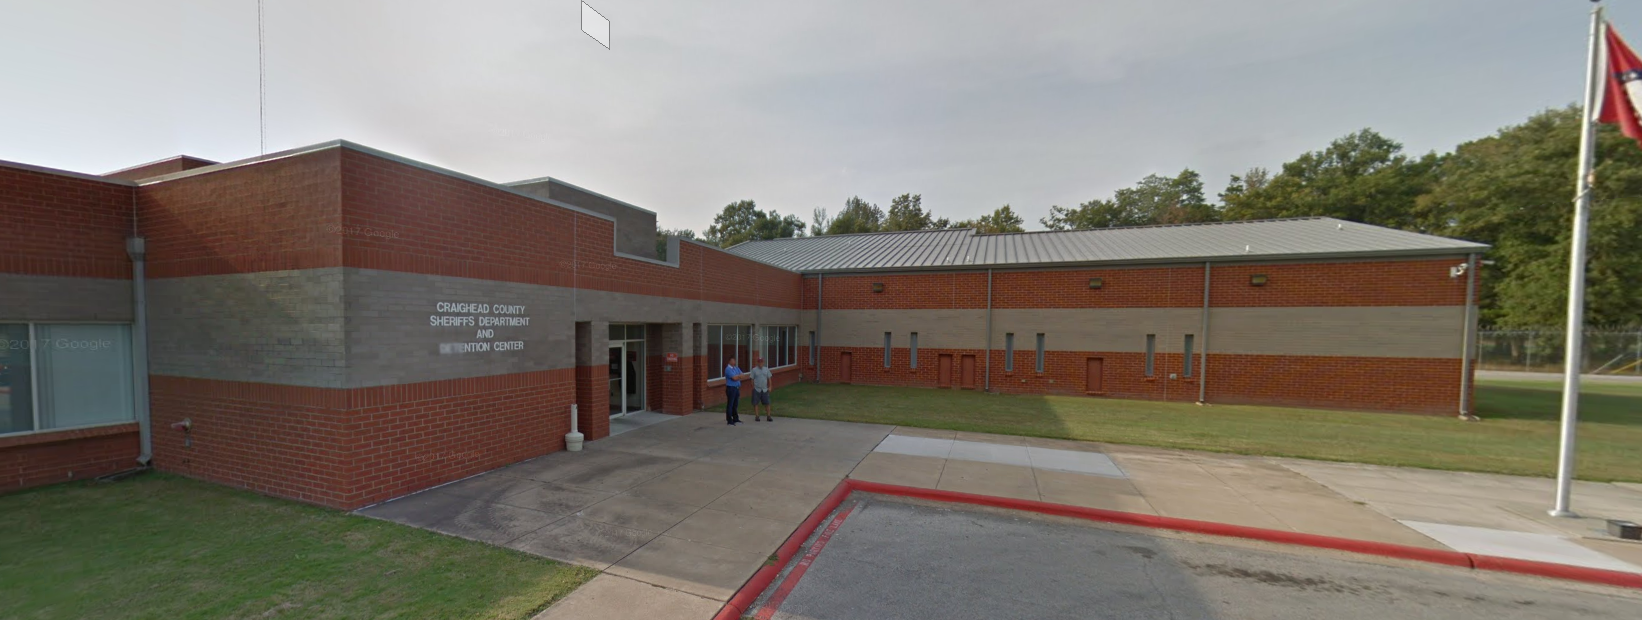 Craighead County Detention Center Inmate Account